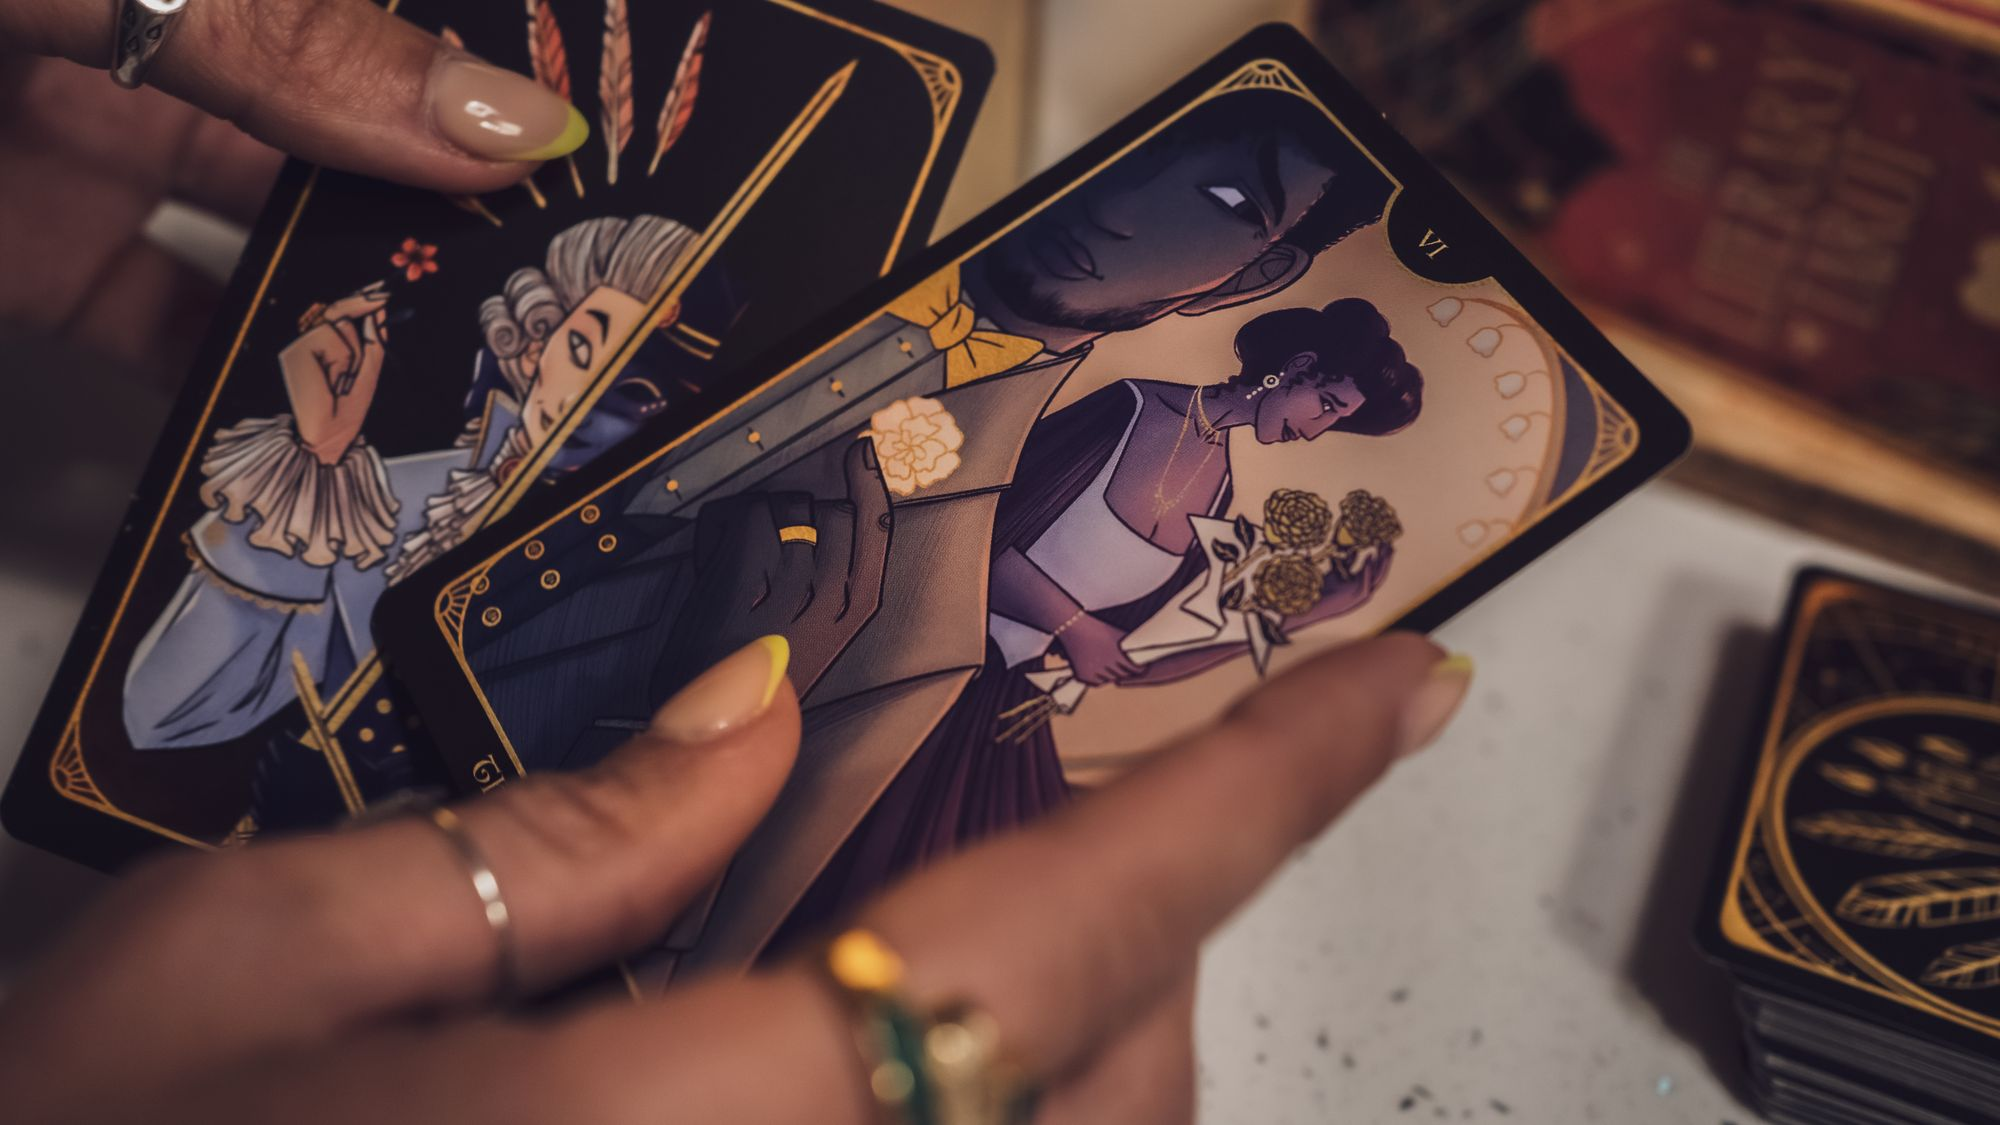 A pair of dark-skinned and well-manicured hands wearing rings hold two illustrated Tarot cards face up from the deck, against a blurred background of stacked, face-down cards showing off the lovely gold-on-black backs. In one face-up card (The Lovers), a Black man in a handsome waistcoat and jacket looks hopefully over his shoulder at an elegant Black woman holding a bouquet of three golden roses.